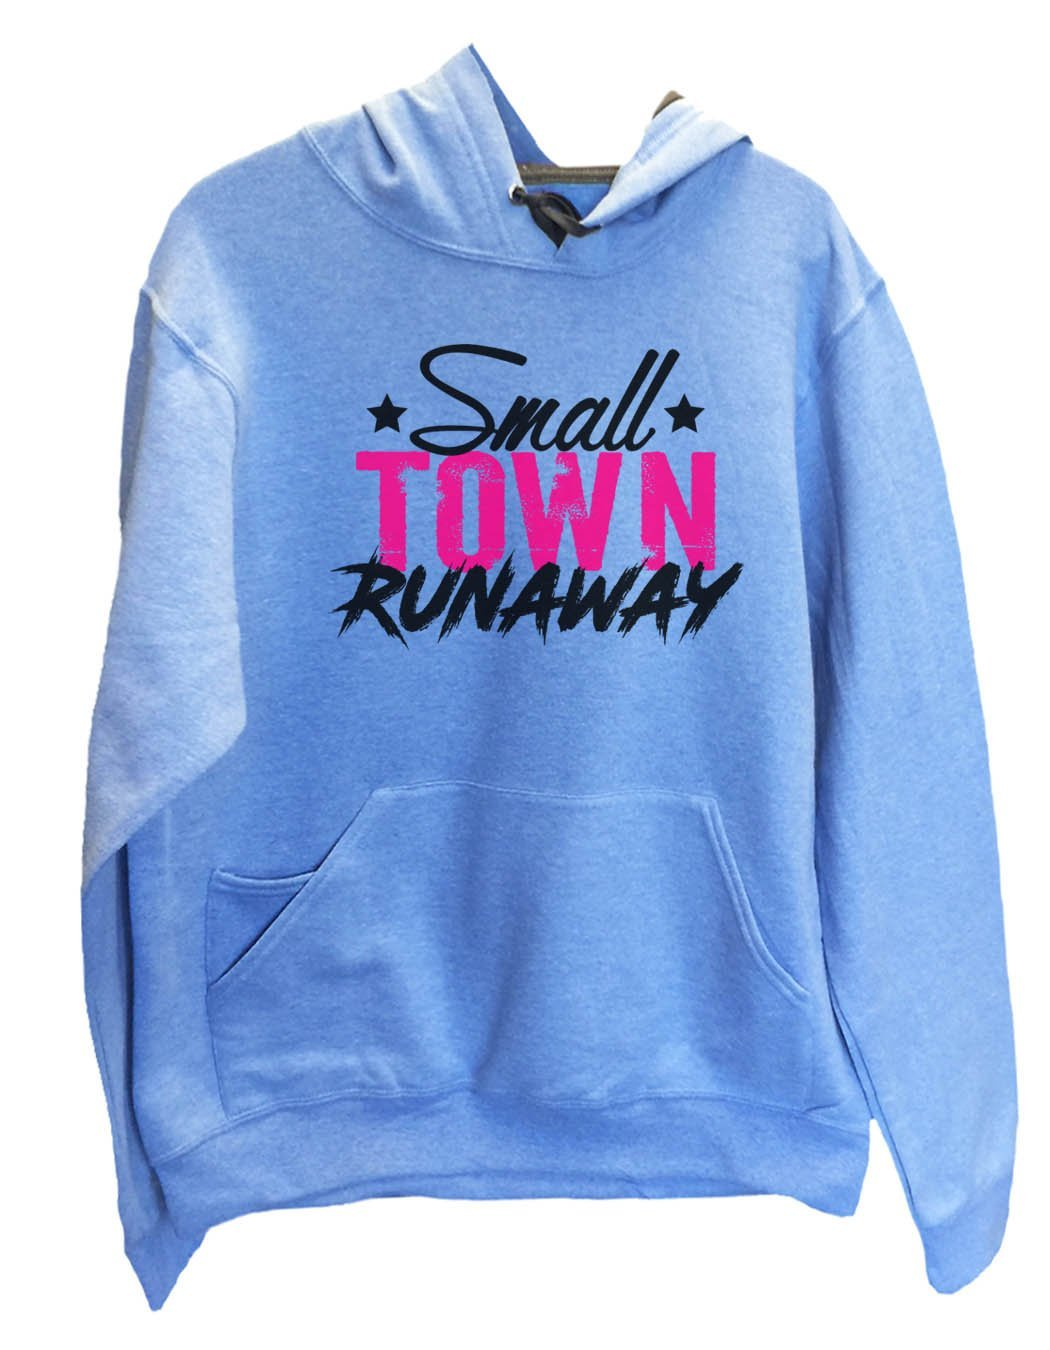 UNISEX HOODIE - Small town runaway - FUNNY MENS AND WOMENS HOODED SWEATSHIRTS - 572 Funny Shirt Small / North Carolina Blue